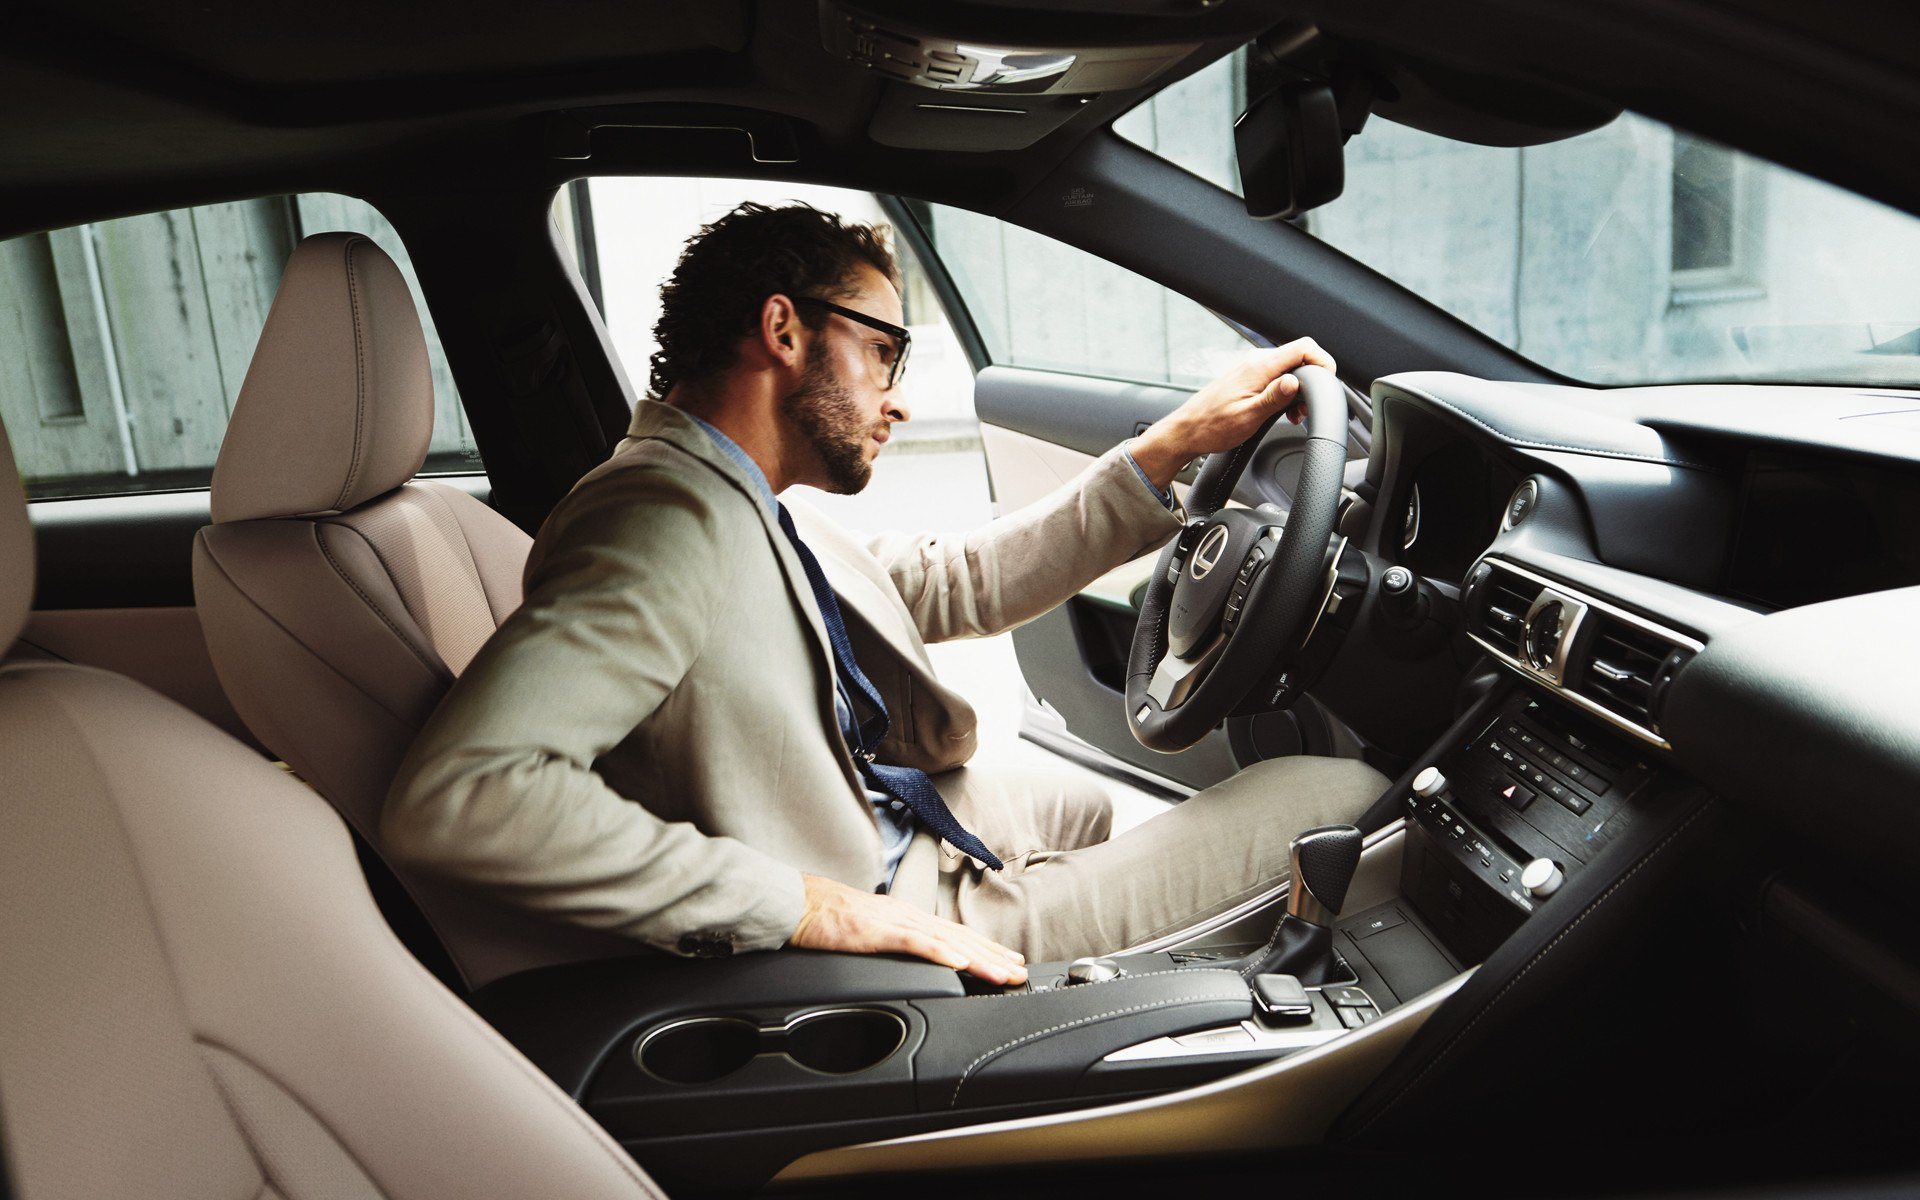 2018 Lexus IS Interior at Ken Shaw Lexus in Toronto